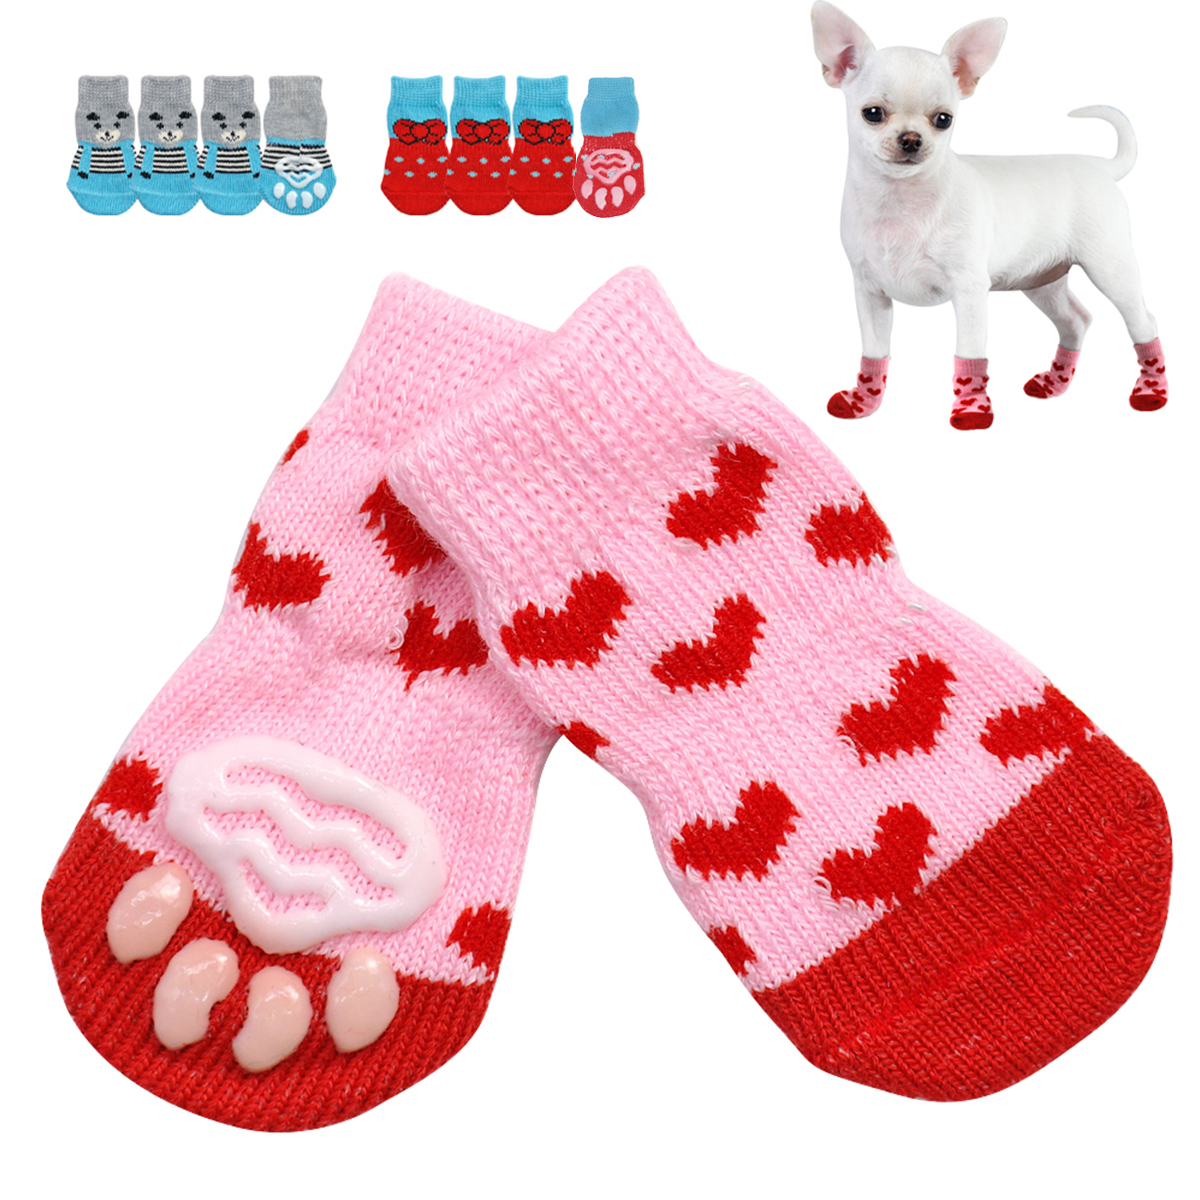 4 Pcs Set Puppy Dog Socks Protective Cute Cartoon Non-Slip Soft Warm Cotton Knitting Dog Shoes For Small Dogs Cats Pet Products